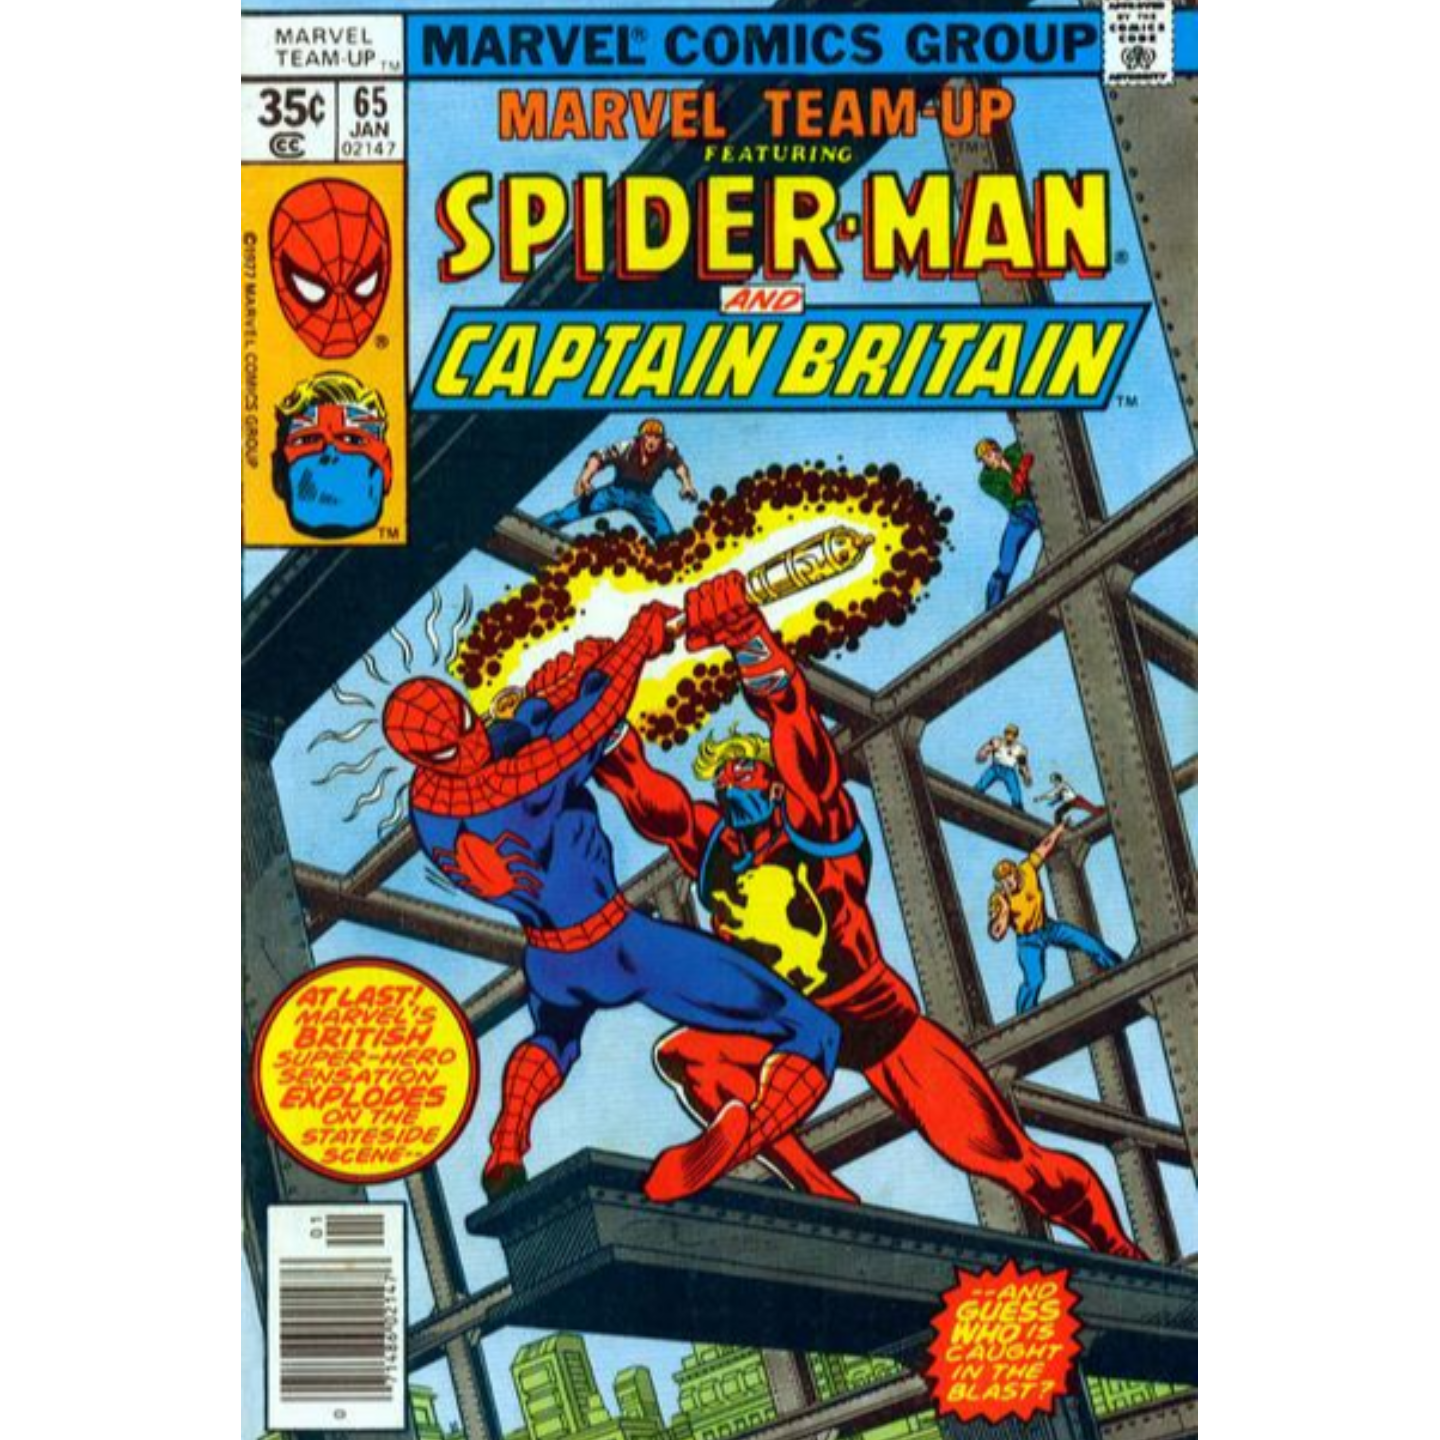 MARVEL TEAM UP FEATURING SPIDERMAN AND CAPTAIN BRITAIN #65 (KEY ISSUE)